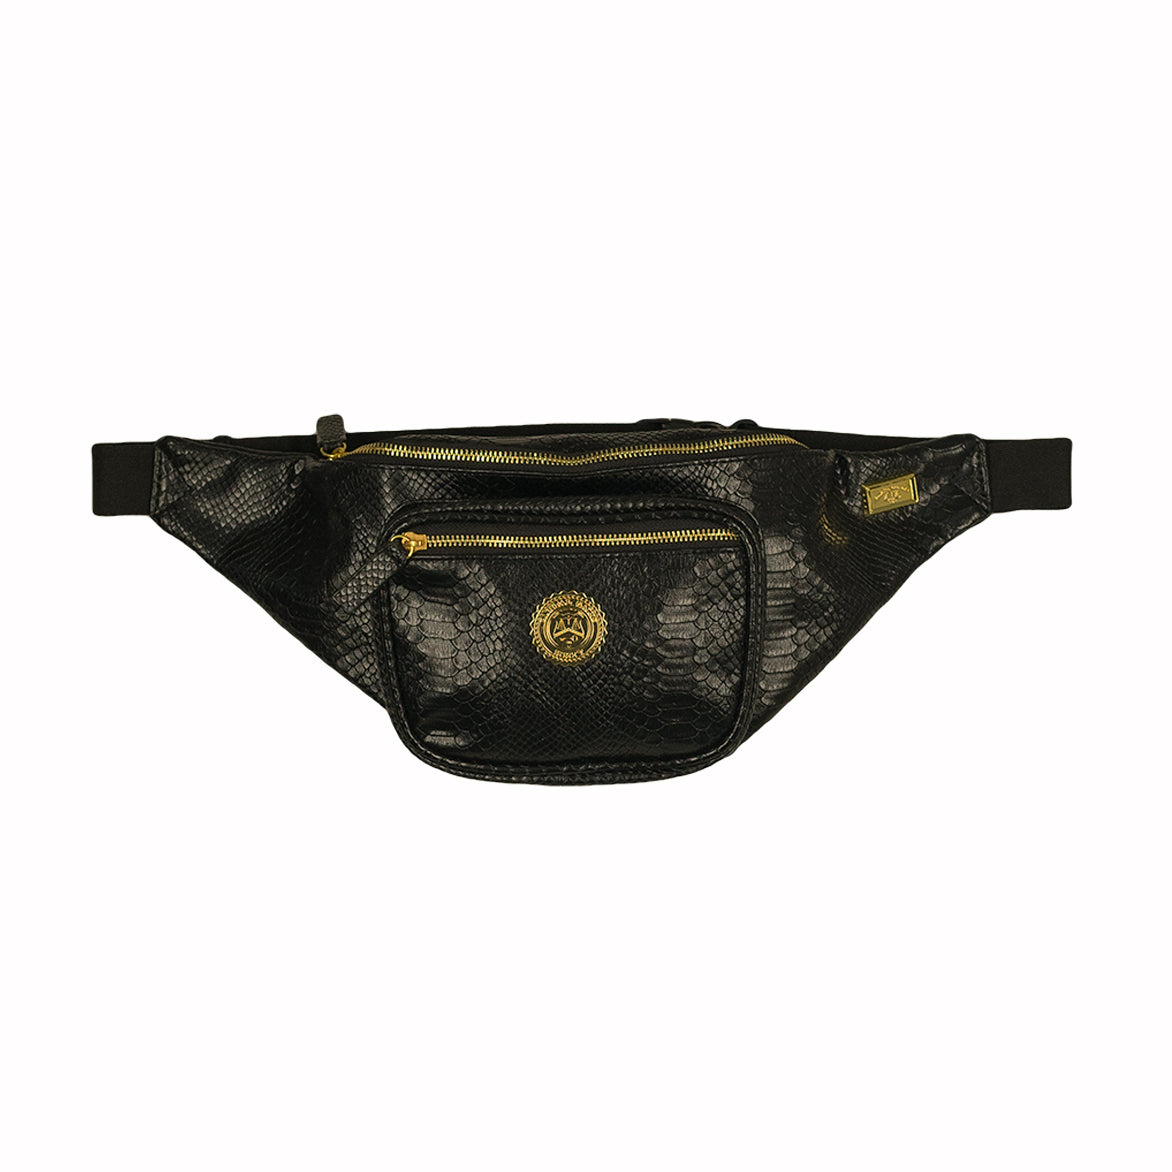 EMBOSSED GATOR SKIN FANNY PACK - BLACK / GOLD